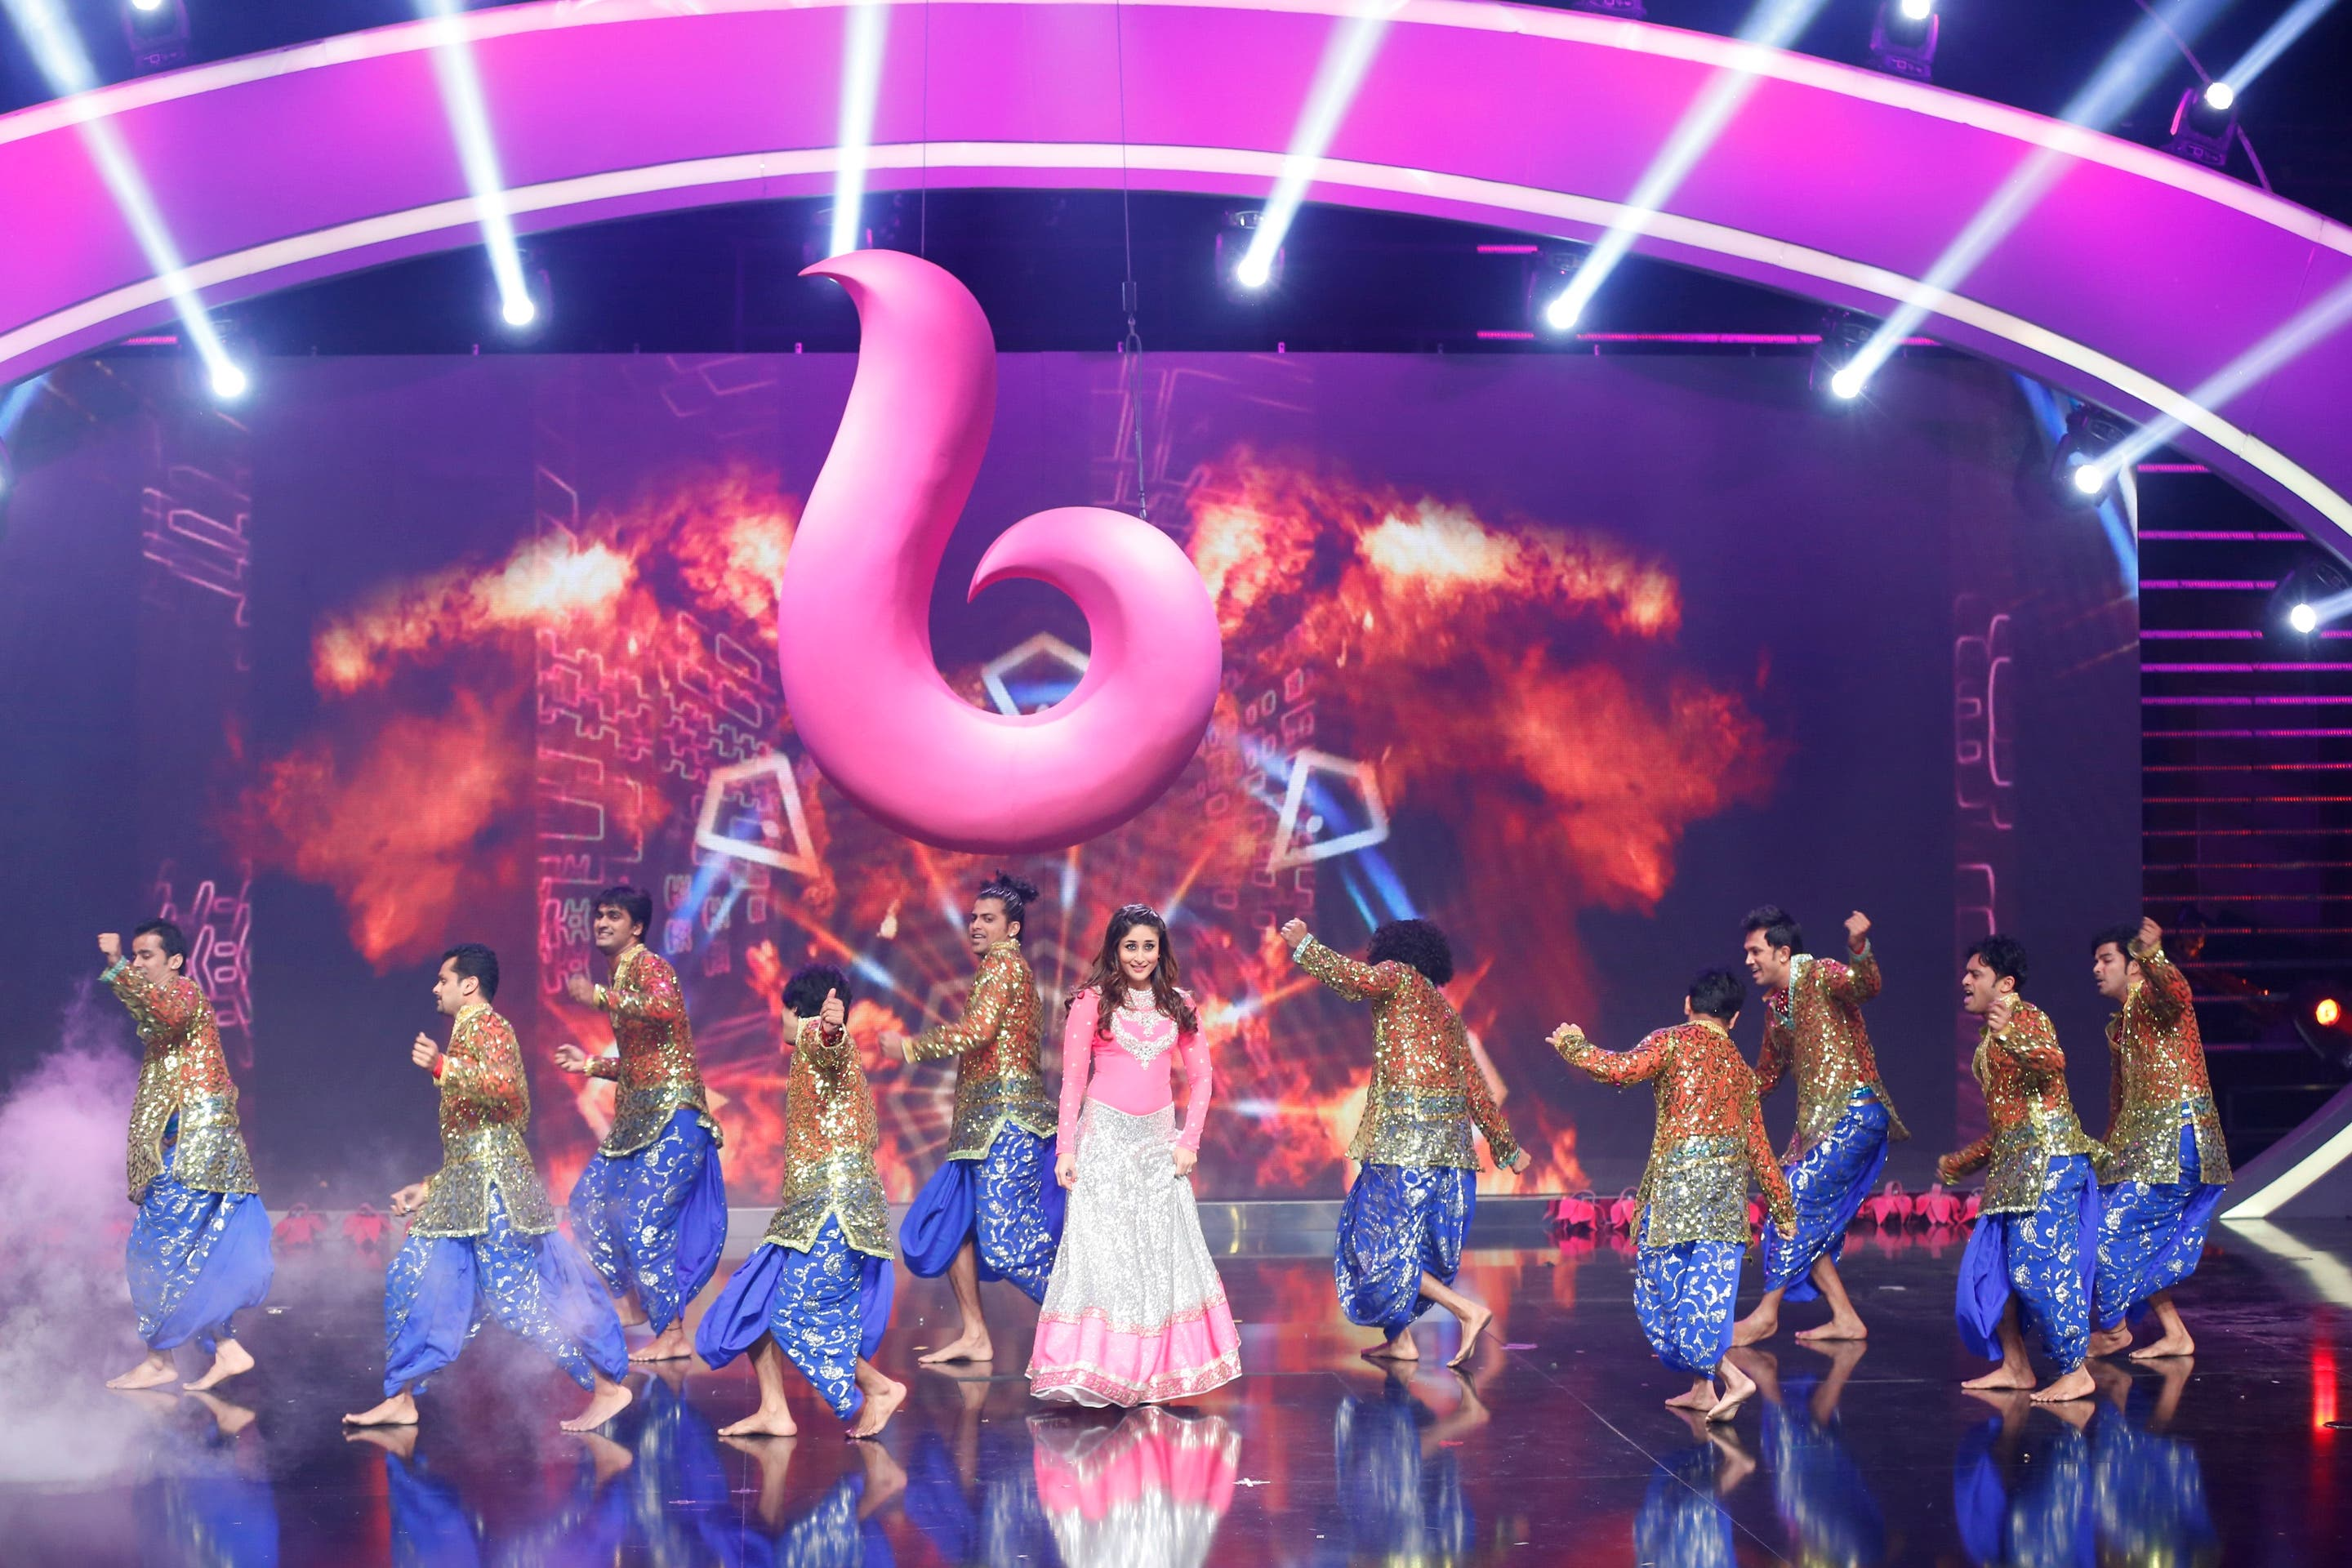 A true Bollywood performance featured on Arabs Got Talent stage marking the launch of MBC Bollywood. (MBC)